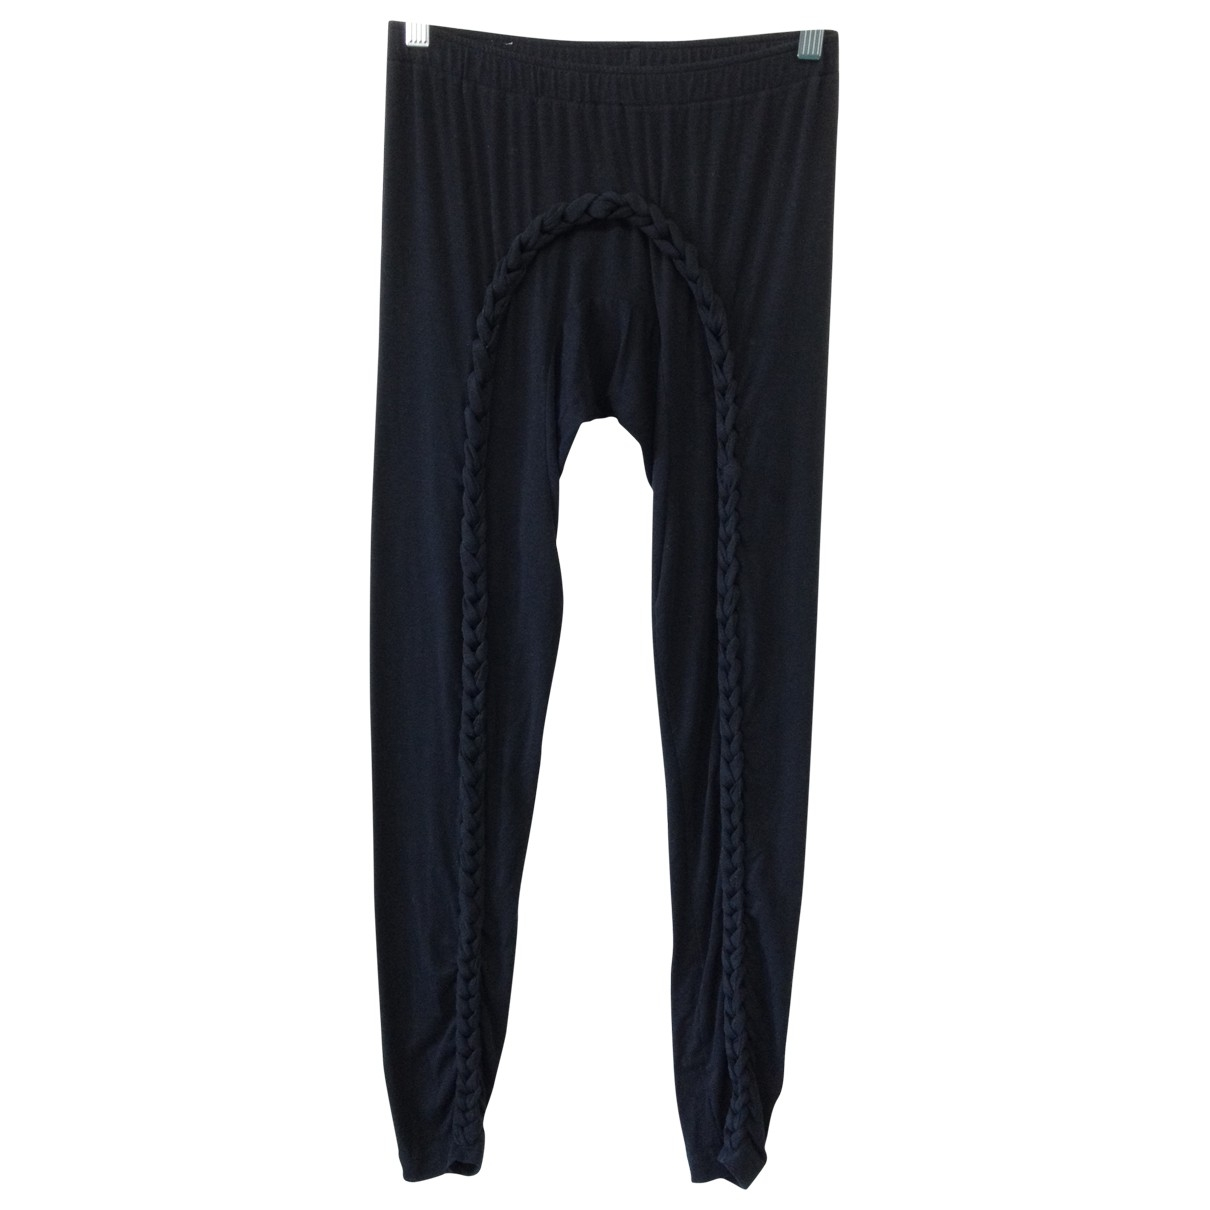 Bernhard Willhelm \N Black Cotton Trousers for Women S International